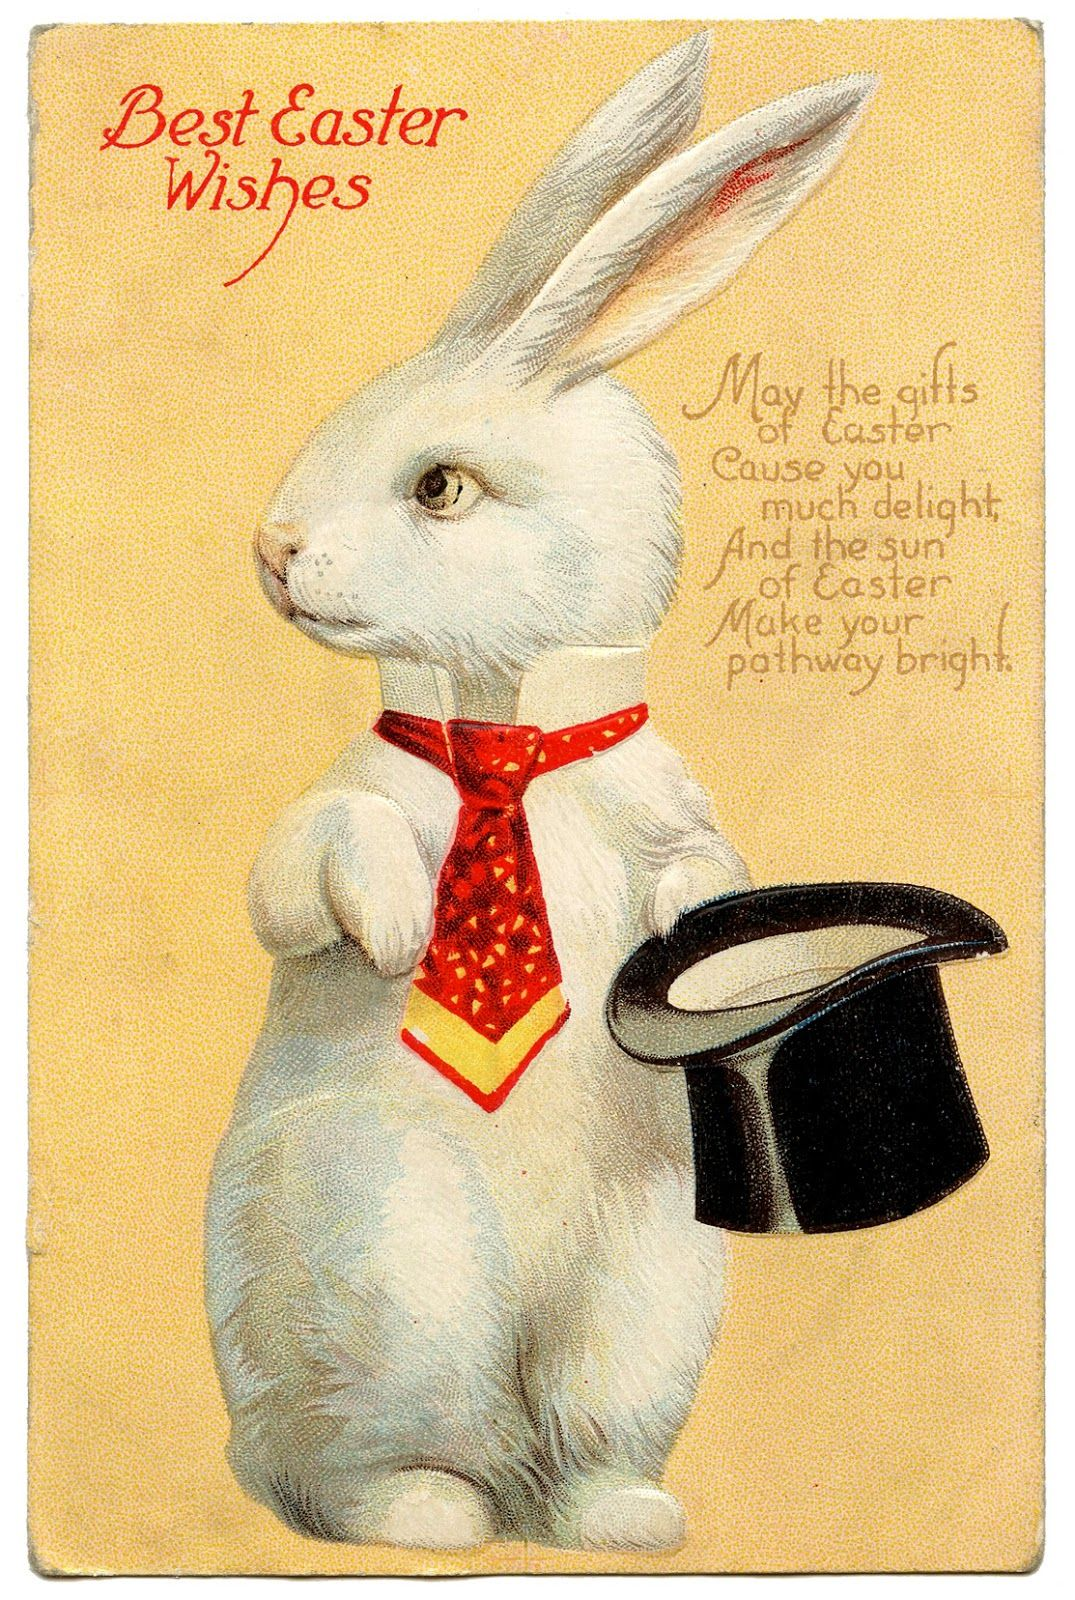 Vintage easter image quirky white rabbit with hat vintage vintage easter image quirky white rabbit with hat negle Image collections